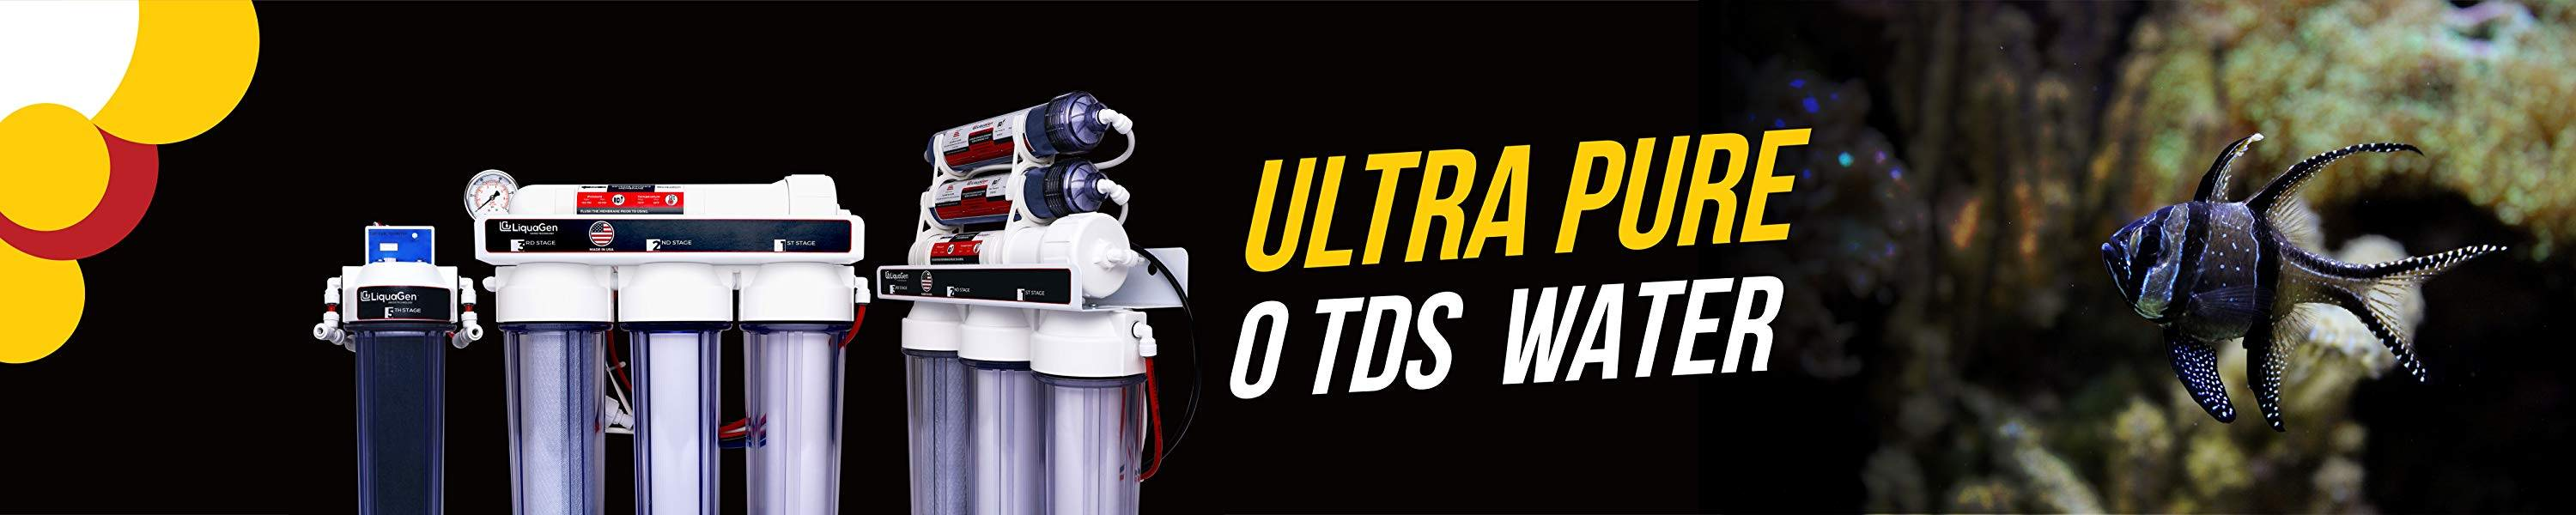 0 TDS water system